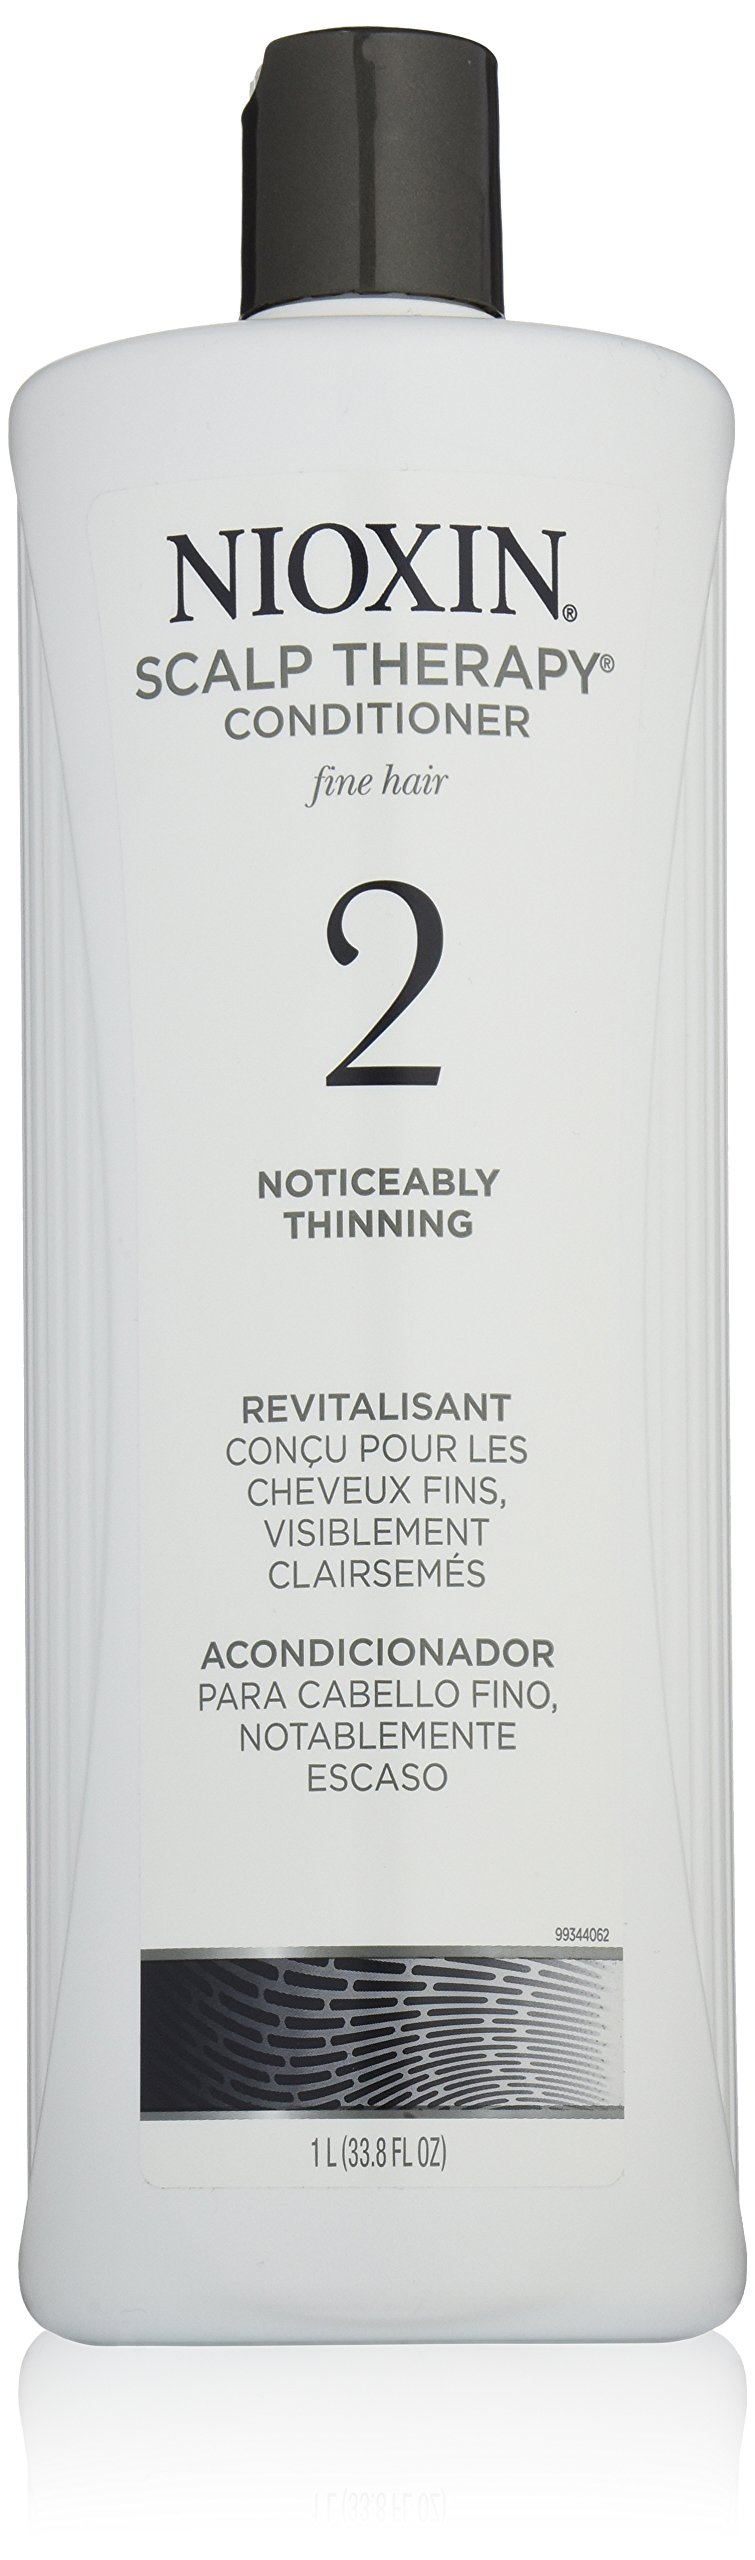 Nioxin Scalp Therapy, System 2 (Noticeably Thinning) Conditioner, 33.8 Ounce